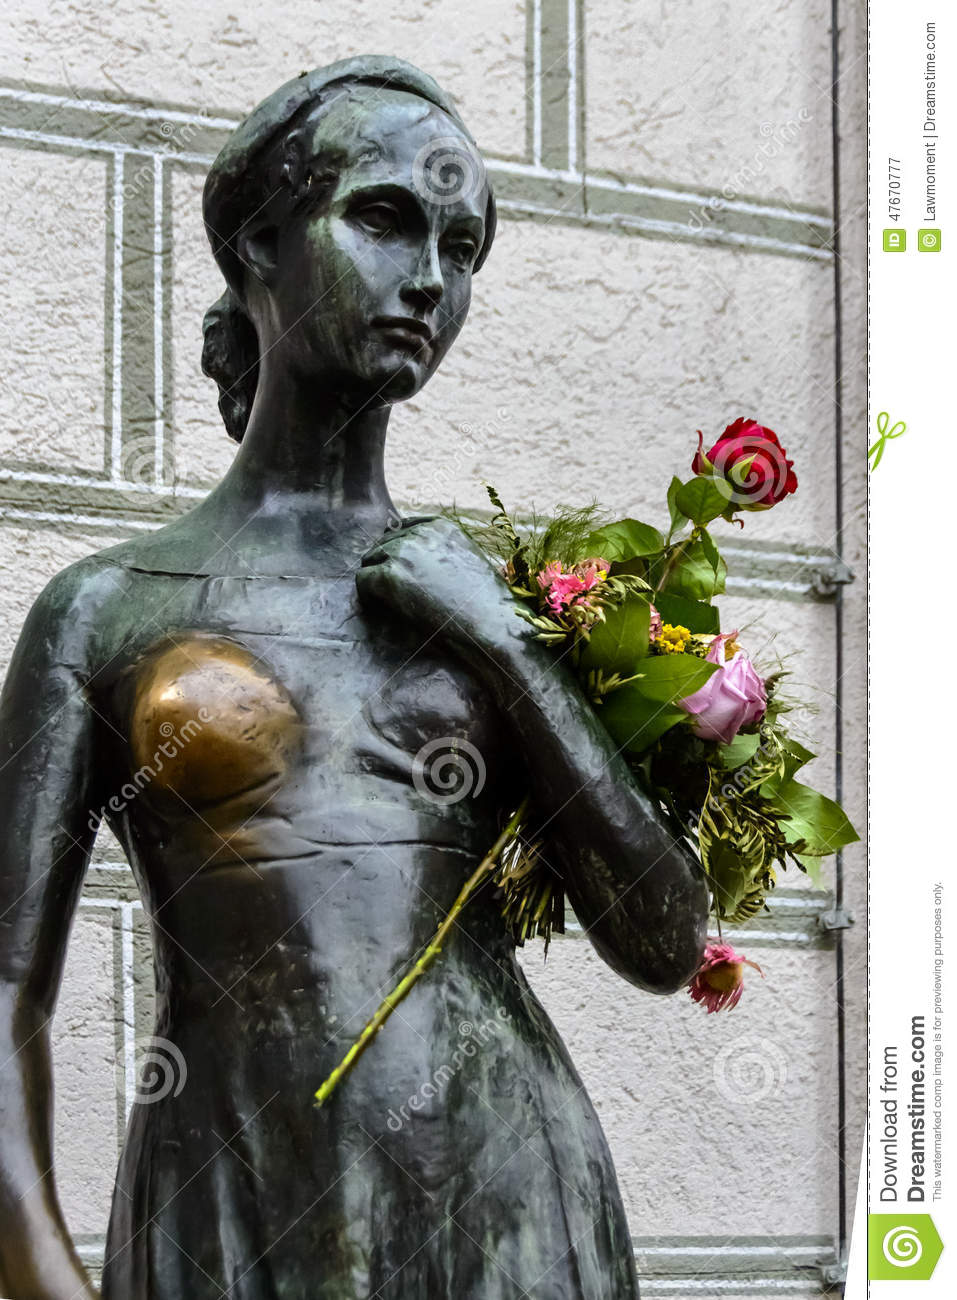 shakespeare s female characters Cleopatra from antony and cleopatra nothing says feisty like a queen scorned, and cleopatra certainly does not disappoint shakespeare's reinvention of the eqyptian monarch in his tragedy antony and cleopatra provides us with one of the most complex female characters in literature, shown by her tempestuous relationship with roman general mark antony which swings from passion and jealousy .